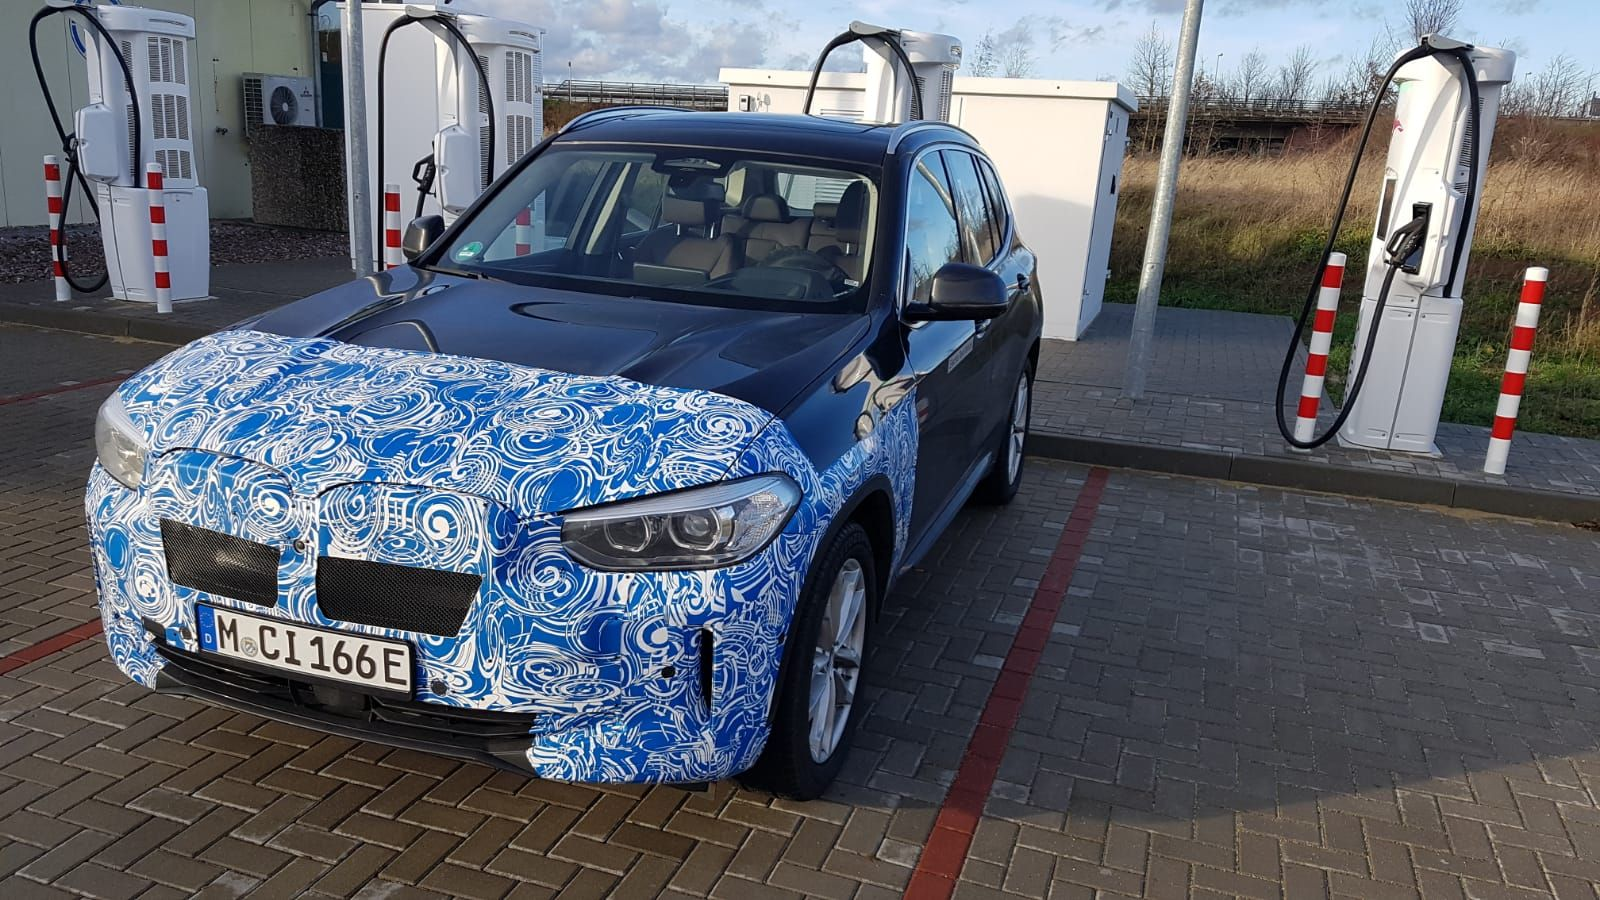 Spied 2020 Bmw Ix3 Spotted First Look At The Interior Design Bmw Bmw Concept Bmw I